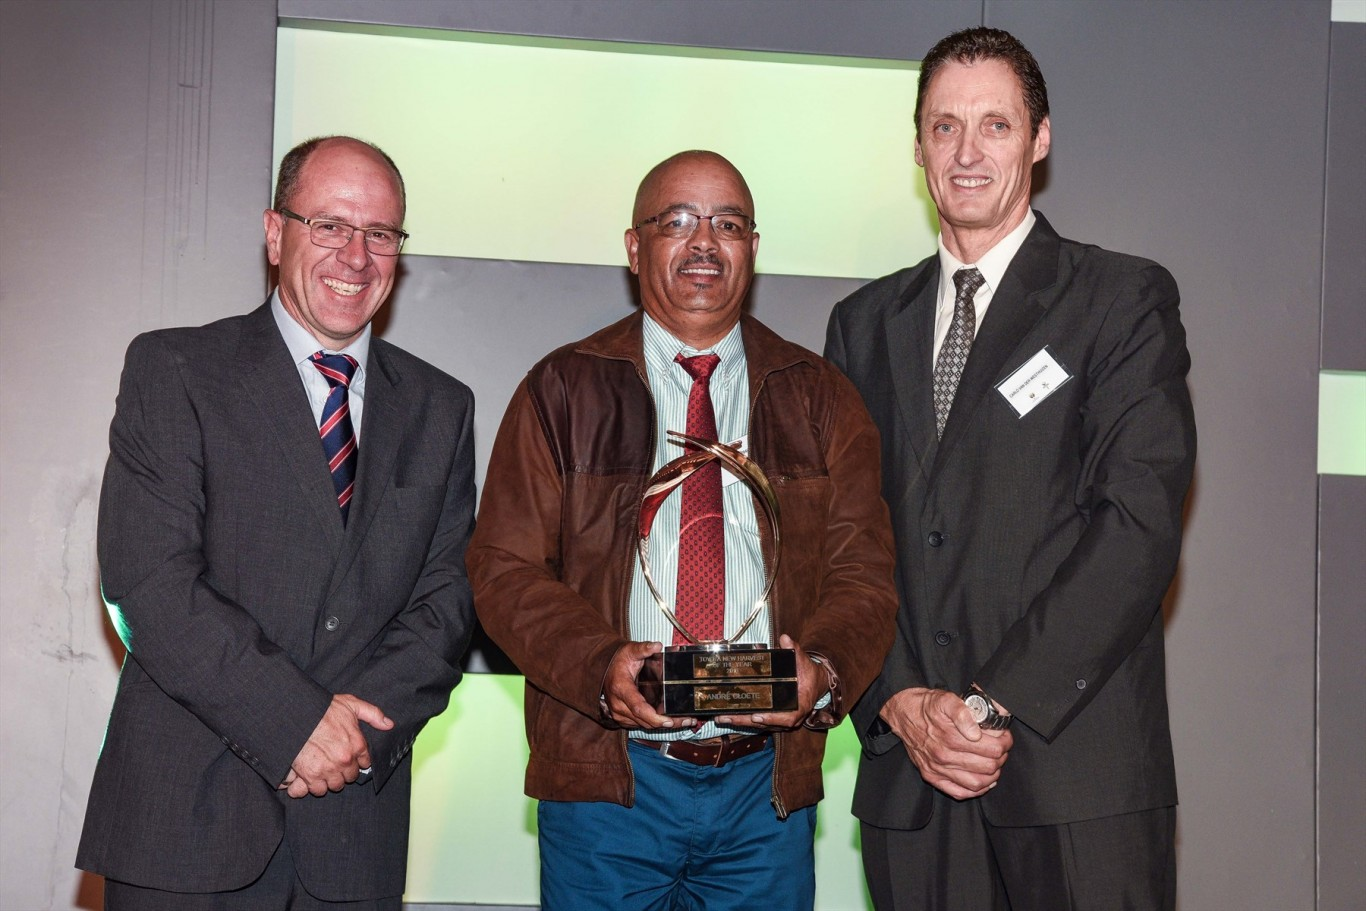 new-harvest-of-the-year-winner-andre-cloete-with-from-left-casper-kruger-vp-of-vehicle-sales-and-dealer-network-for-toyota-sa-and-prof-carlu-van-der-westhuizen_1800x1800